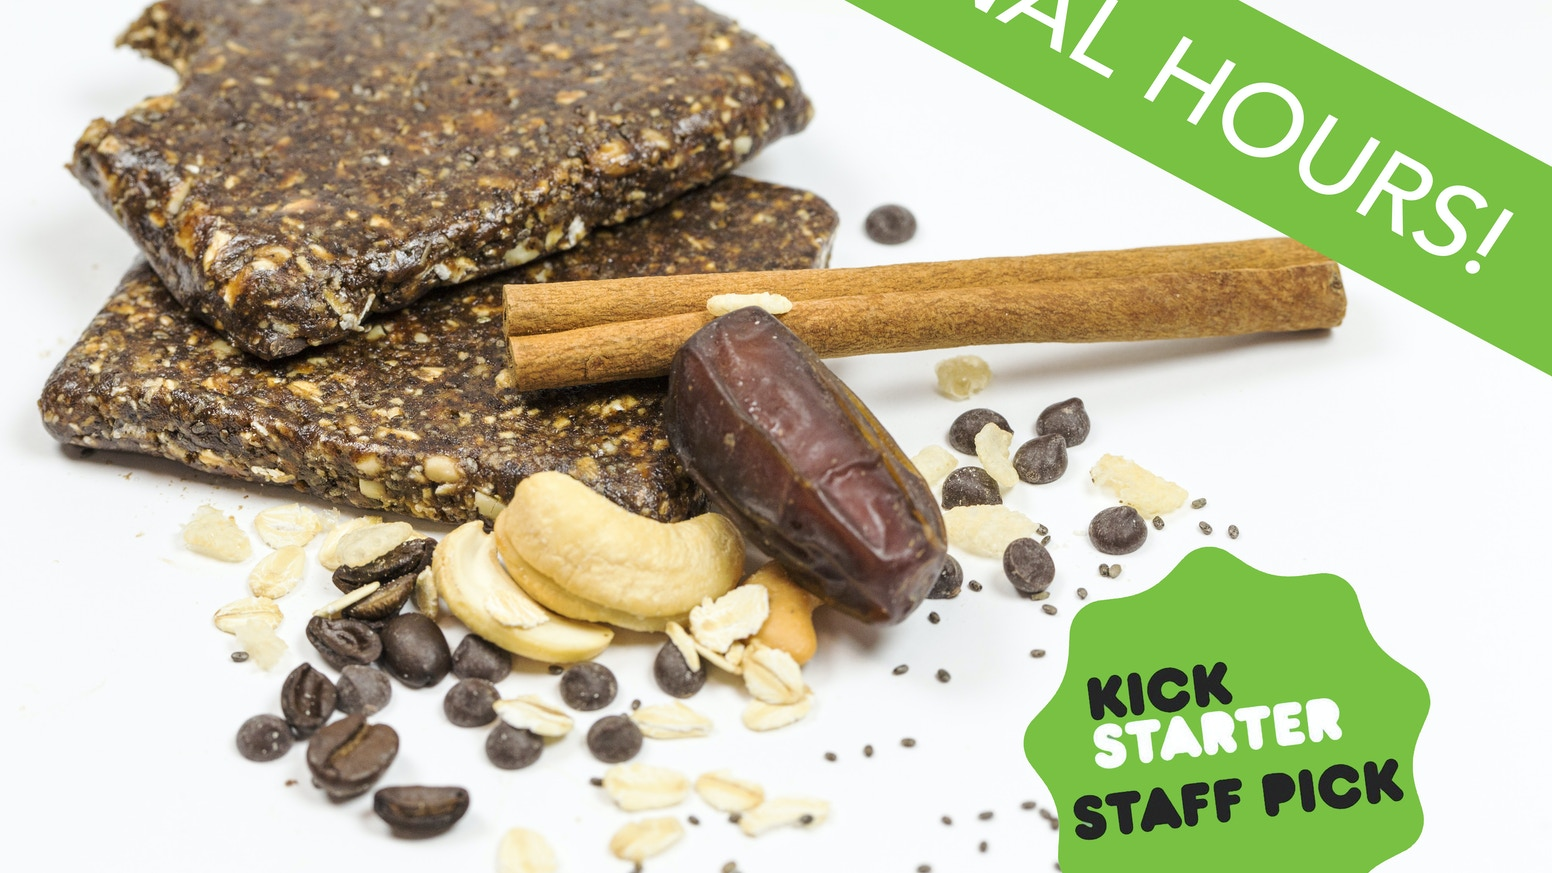 The Eat Your Coffee Bar is an all natural energy bar infused with real coffee. 100% Organic, Vegan, Gluten-Free, Fair-Trade and most importantly, delicious. Eat Your Coffee!